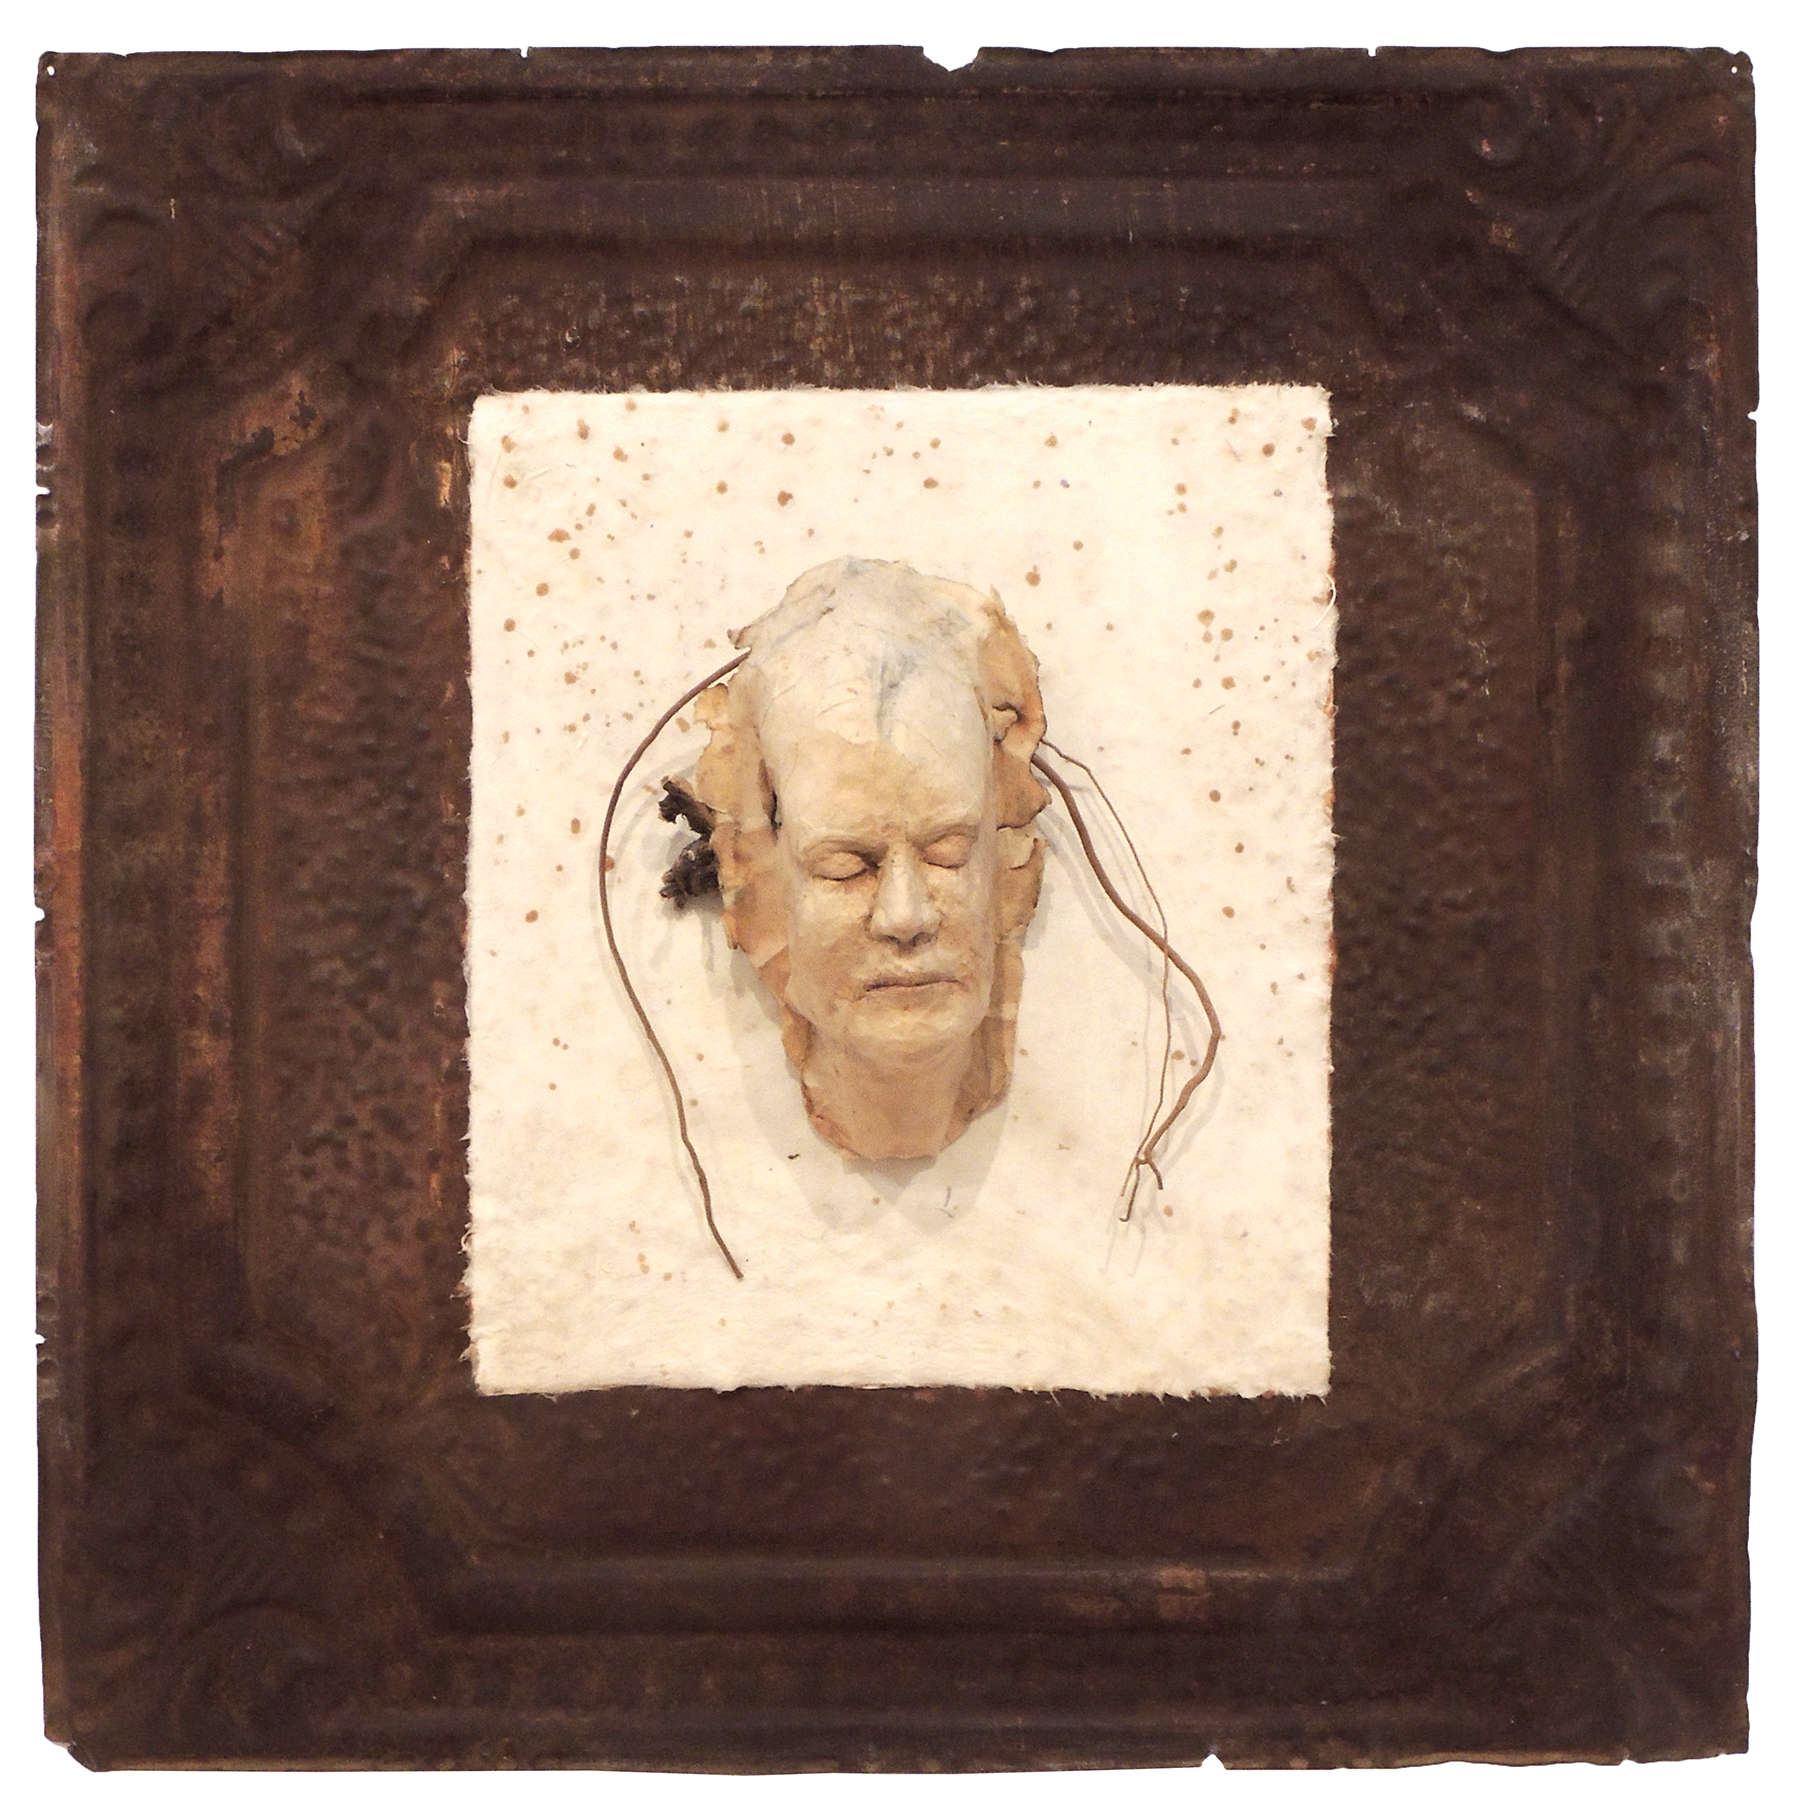 Alice Robrish | ANCESTORS – FACES IN THE WALL II | mixed ceiling tin,handmade paper, paer maché, wood